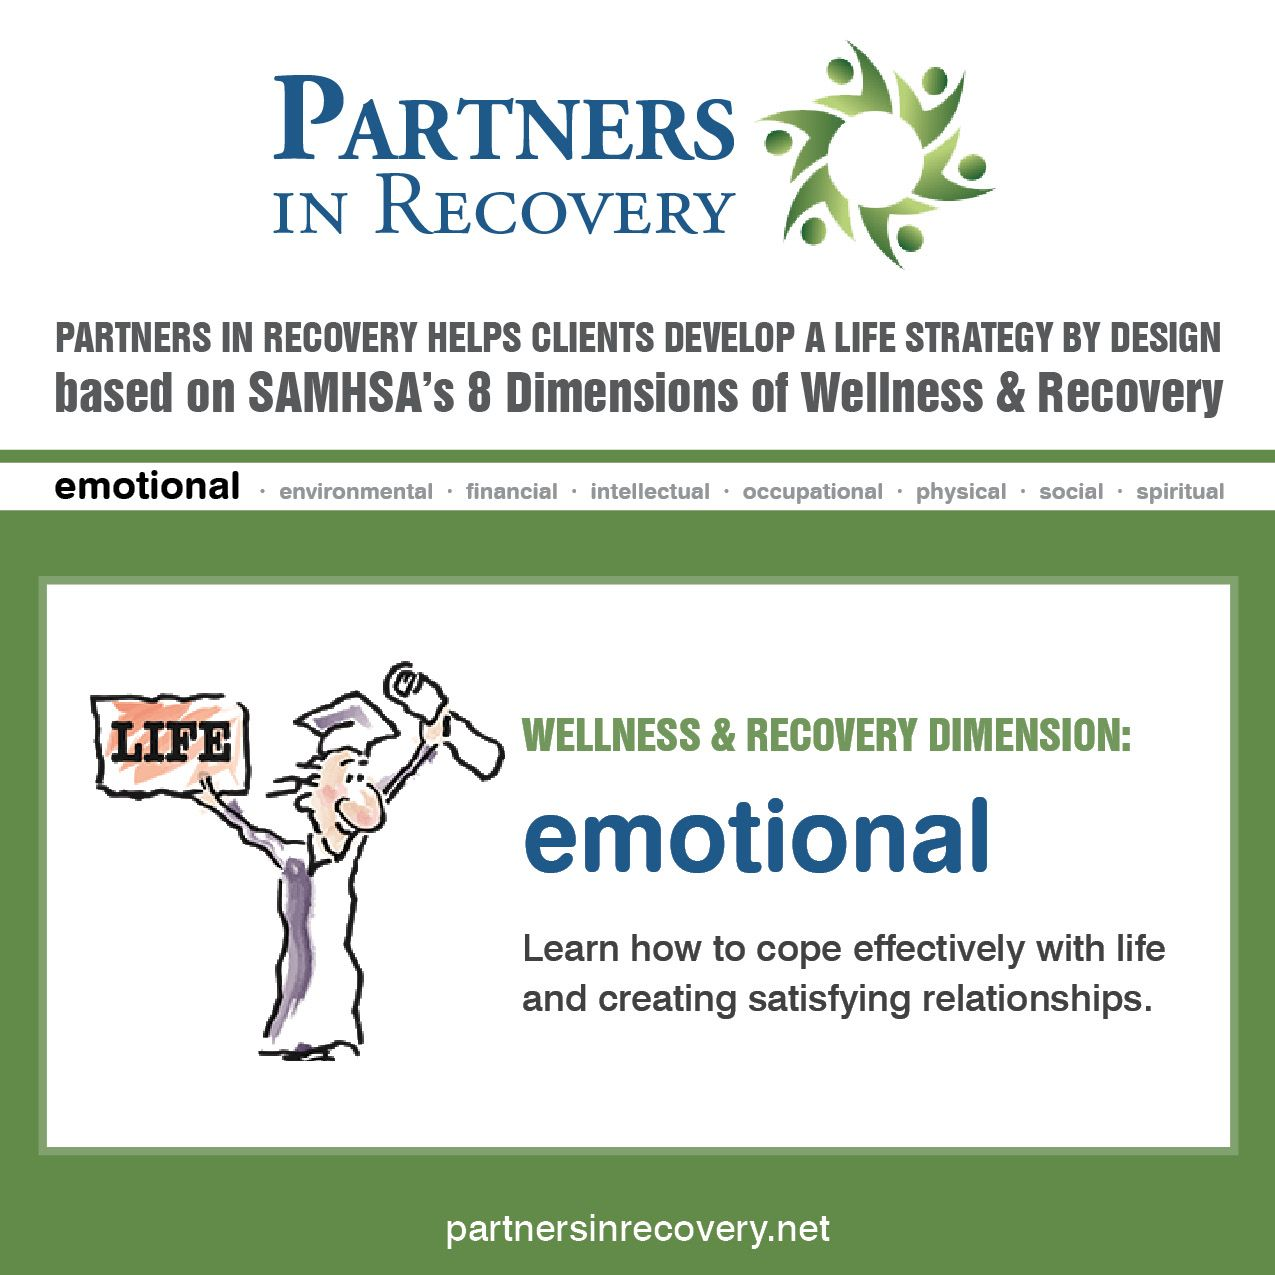 Partners In Recovery uses the SAMHSA Dimensions of